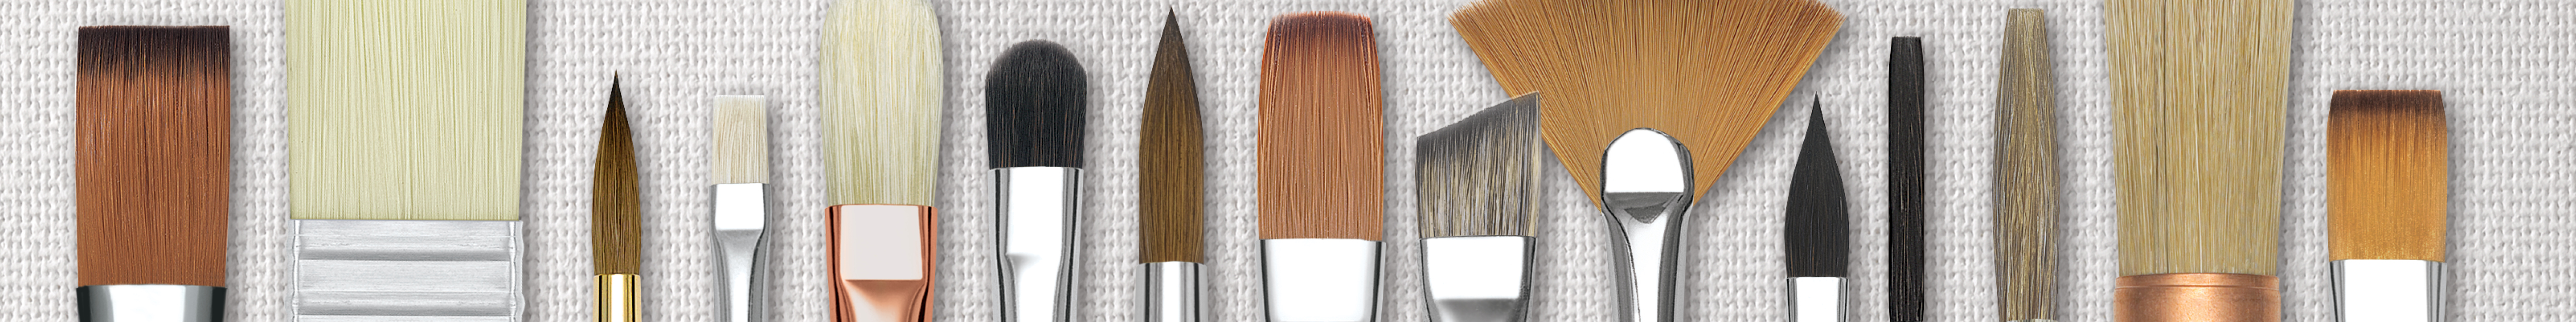 Artist Brushes And Painting Tools Blick Art Materials